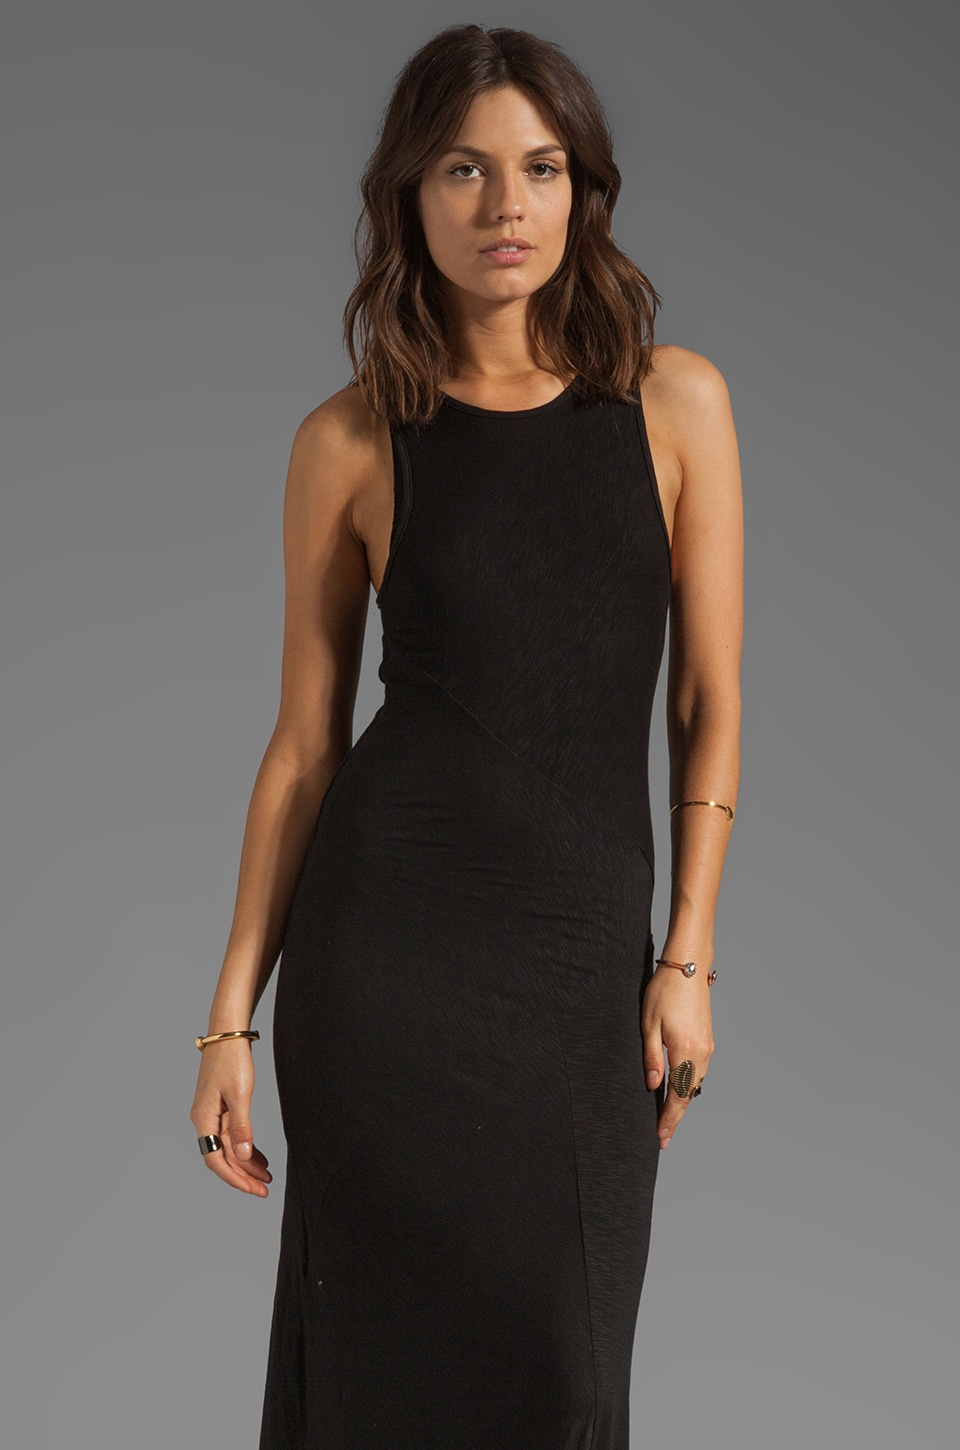 dolan Slub Jersey Hi Low Maxi Dress in Black